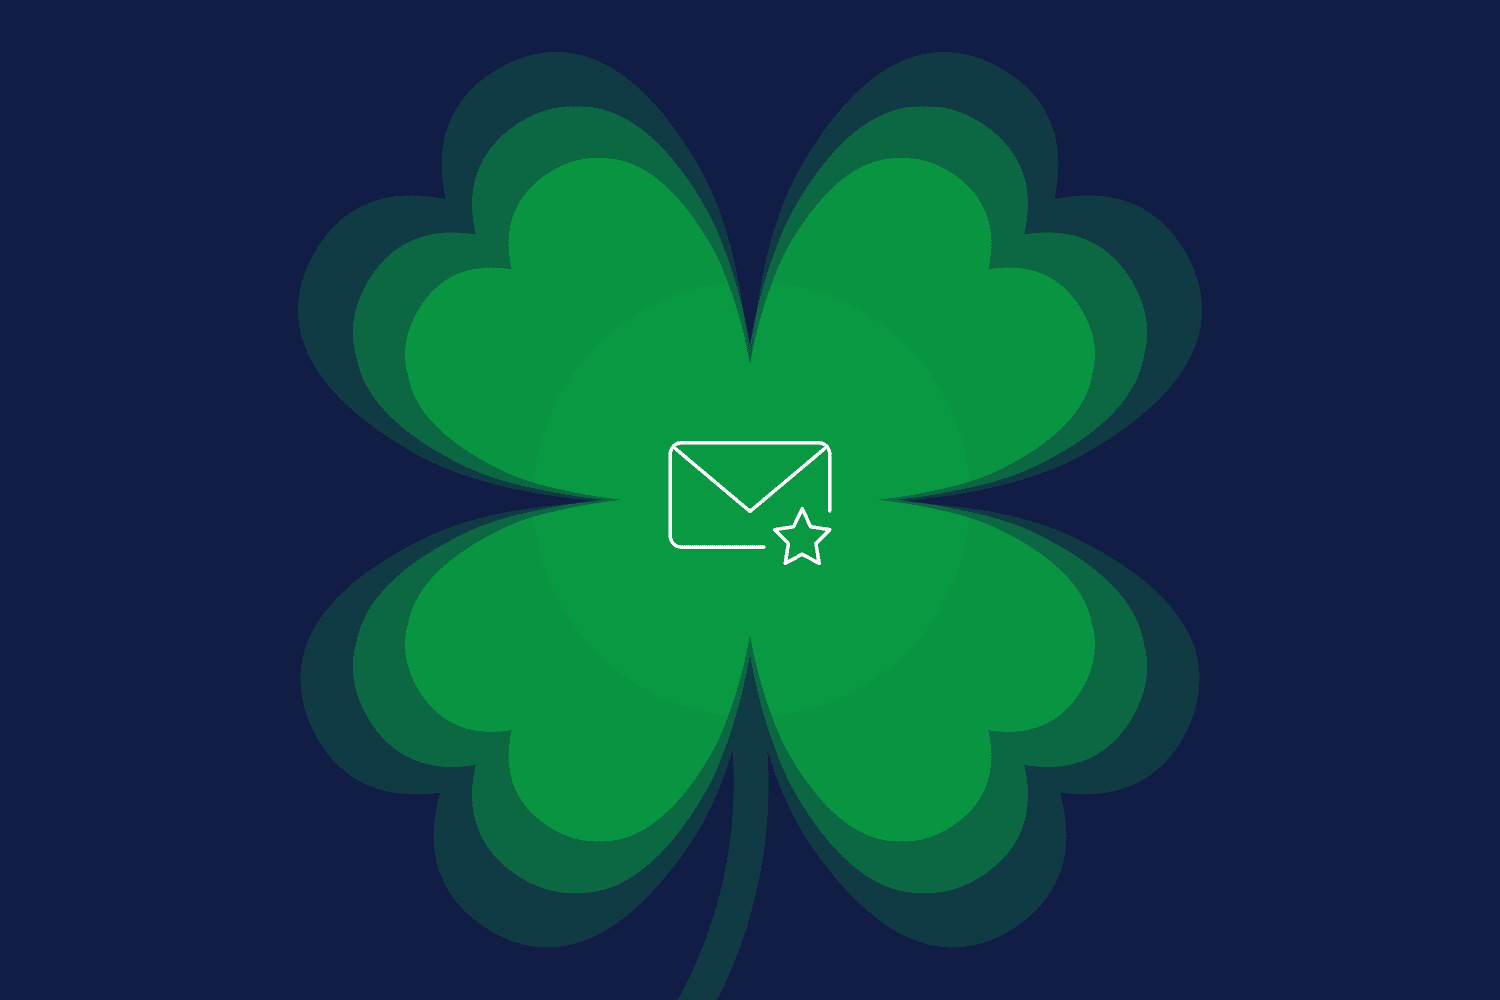 Four-leaf clover with email icon to depict St. Patrick's Day marketing